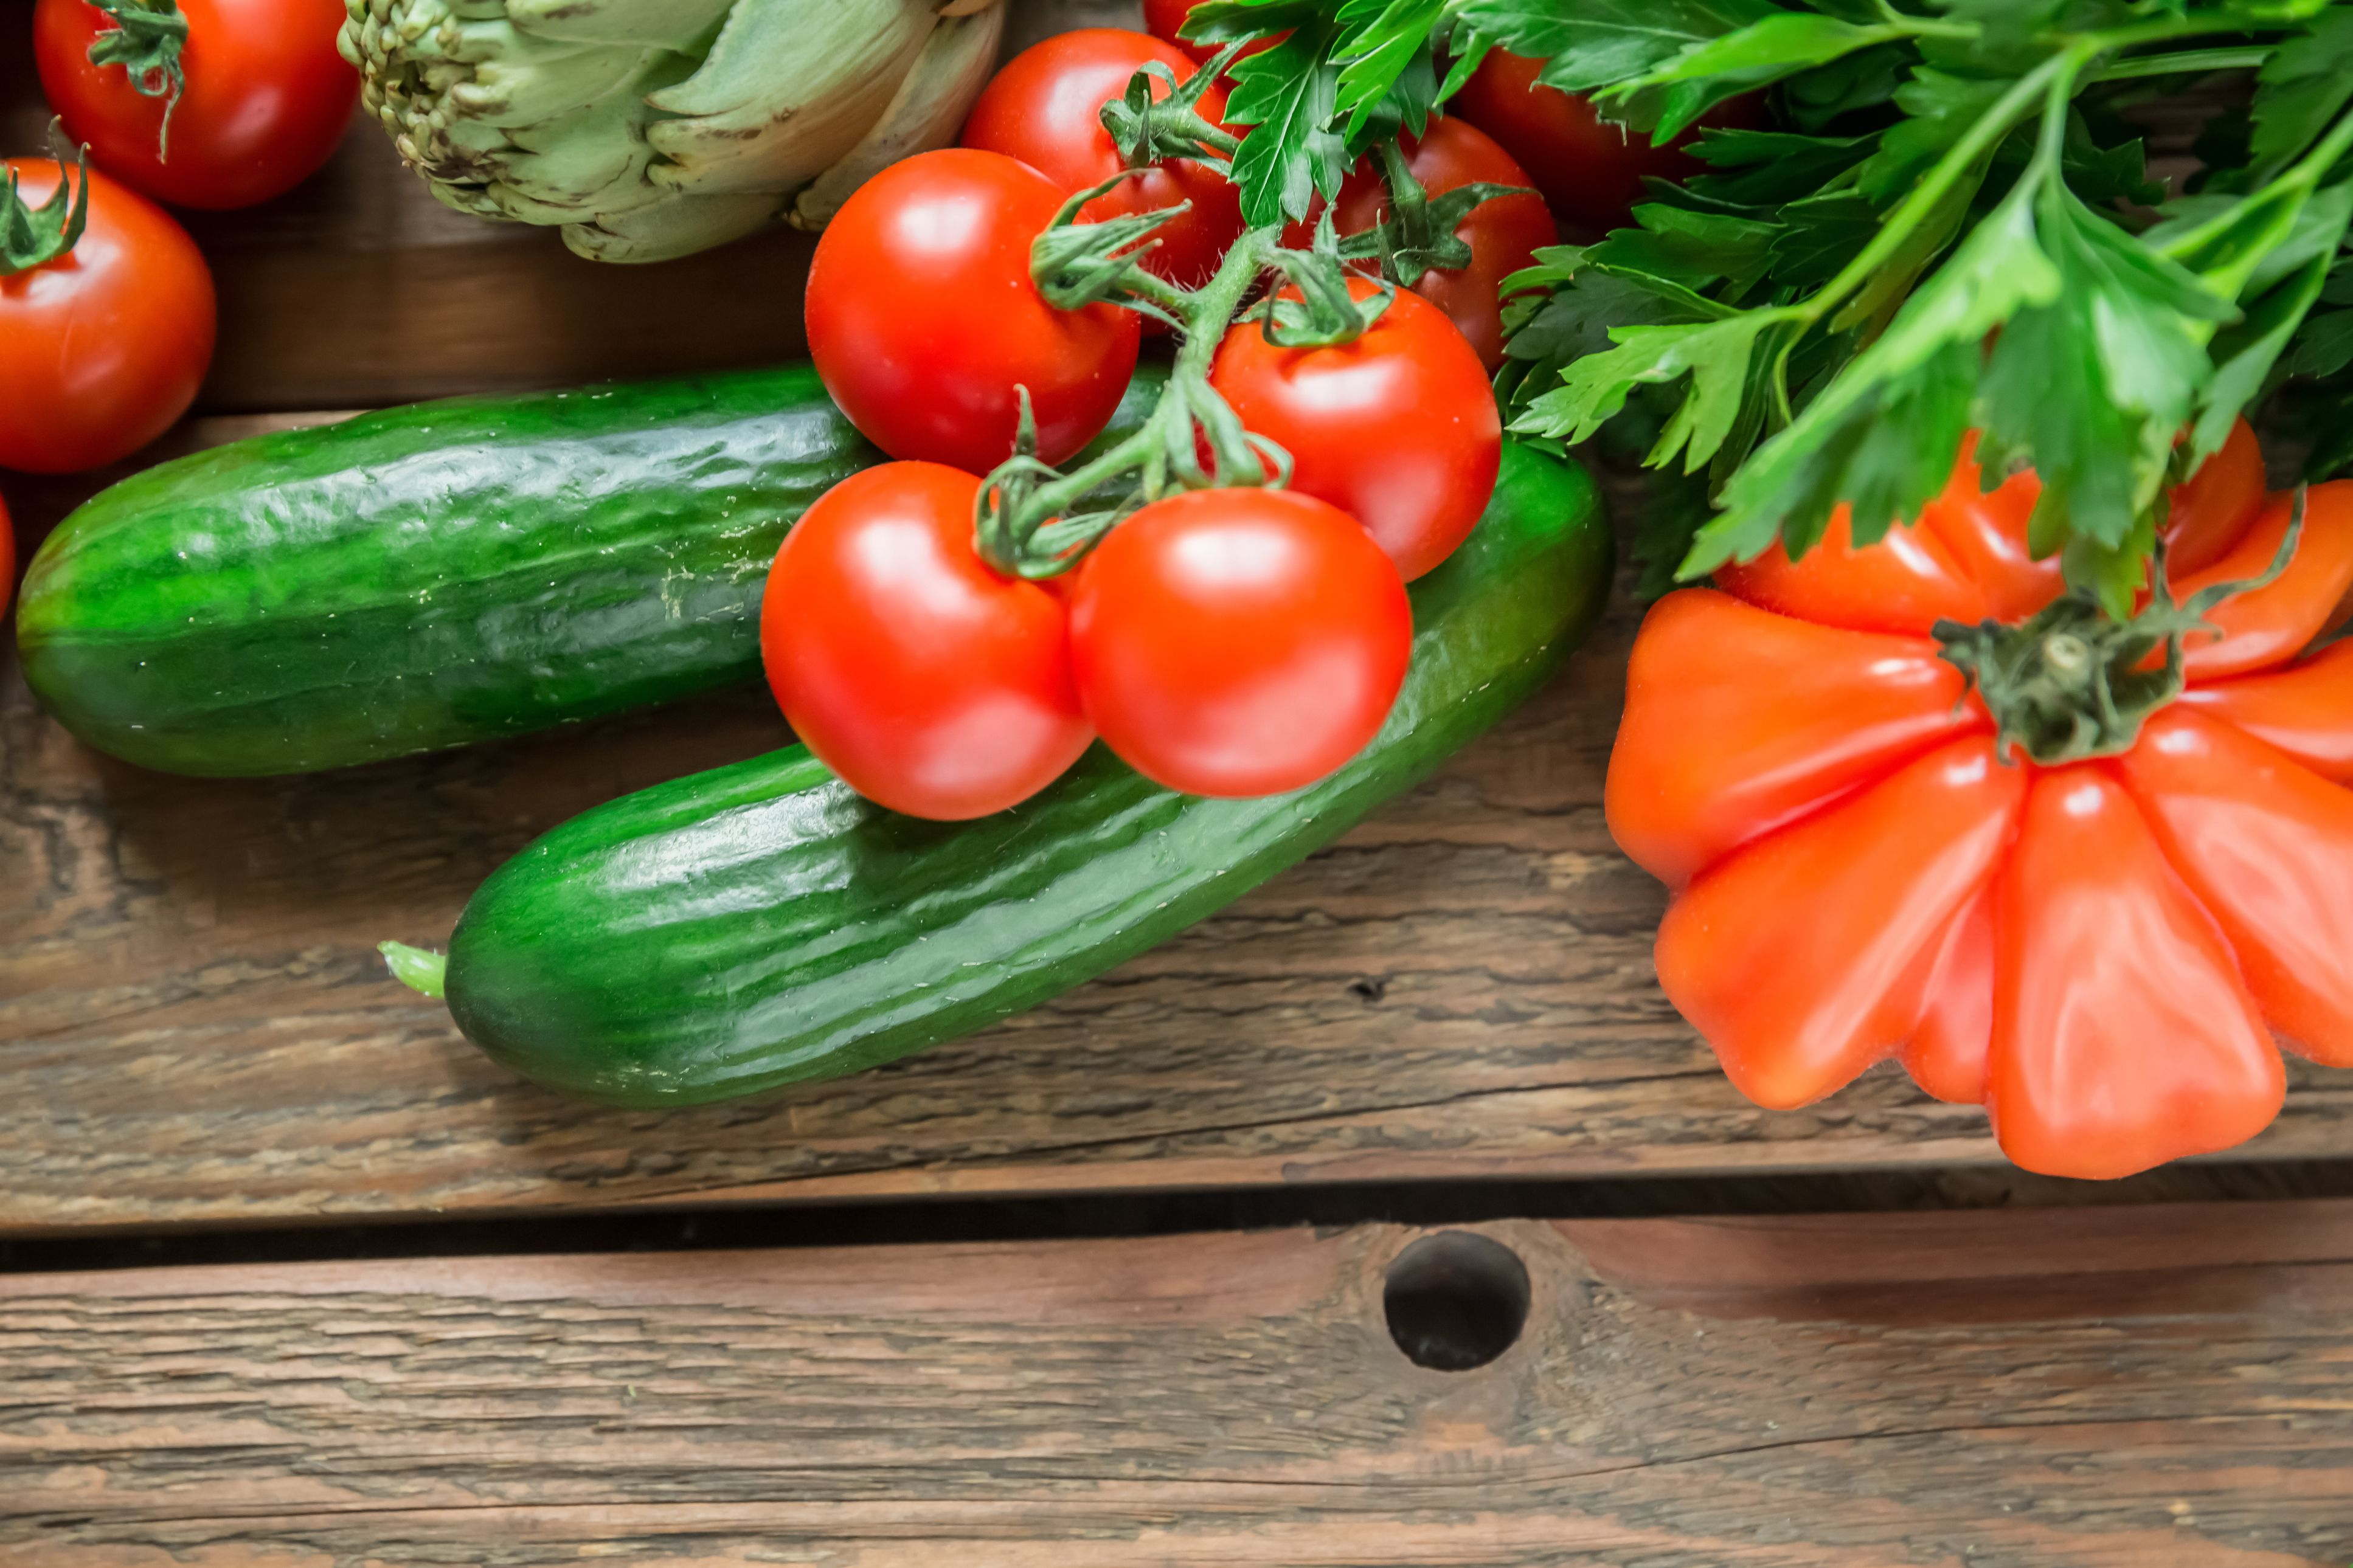 Cucumbers and Tomatoes on a wooden table